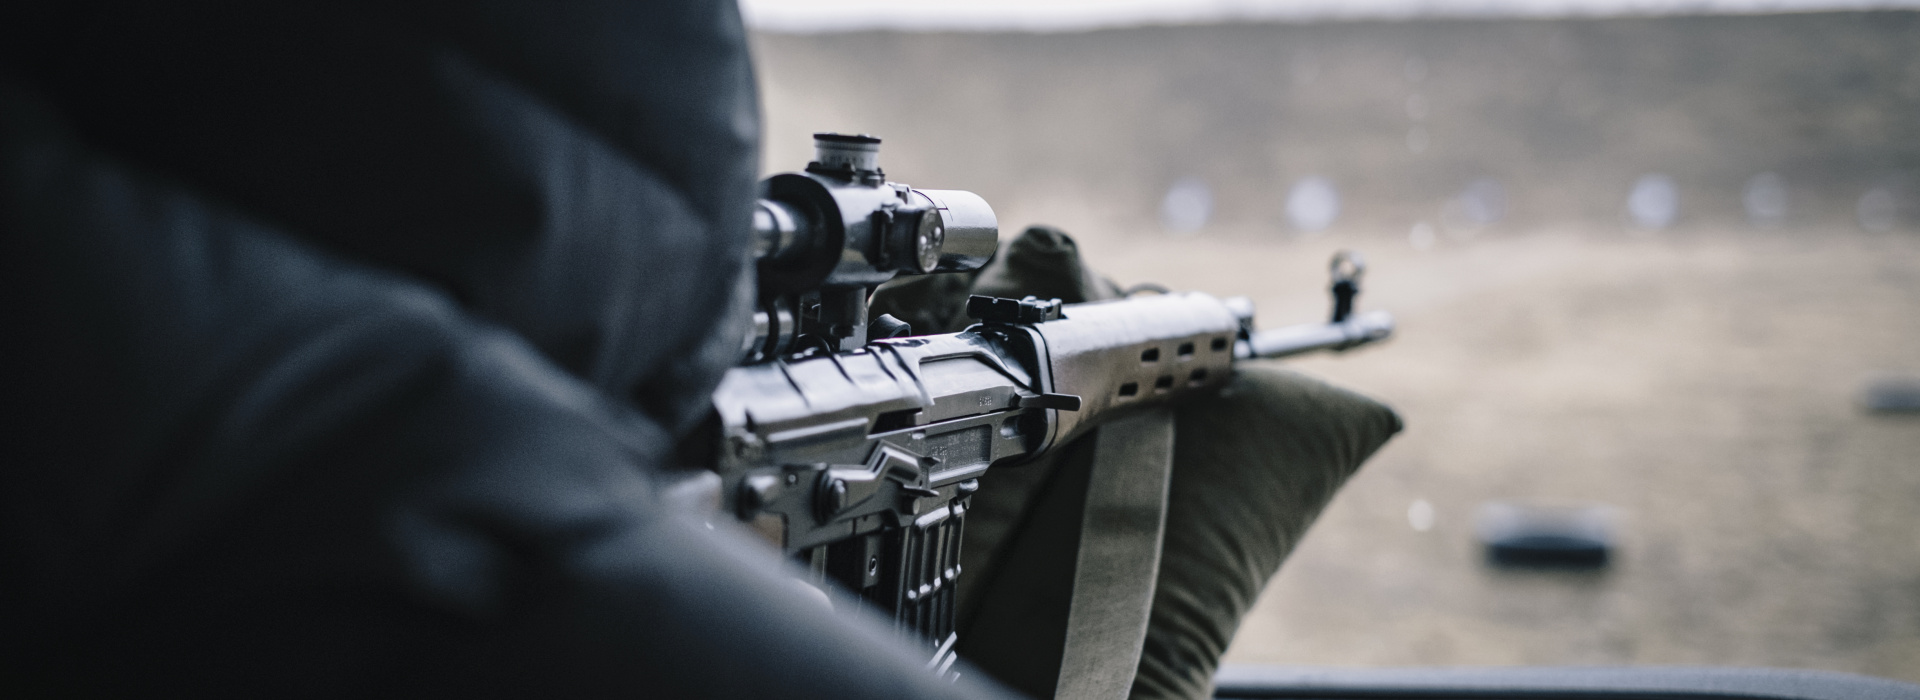 For sure, it is much better to evaluate a weapon by deed, not by word. Luckily, at our private shooting range, you can always try each of these guns and choose who wins. Book a shooting tour to shoot from these legends of the world's gun industry!